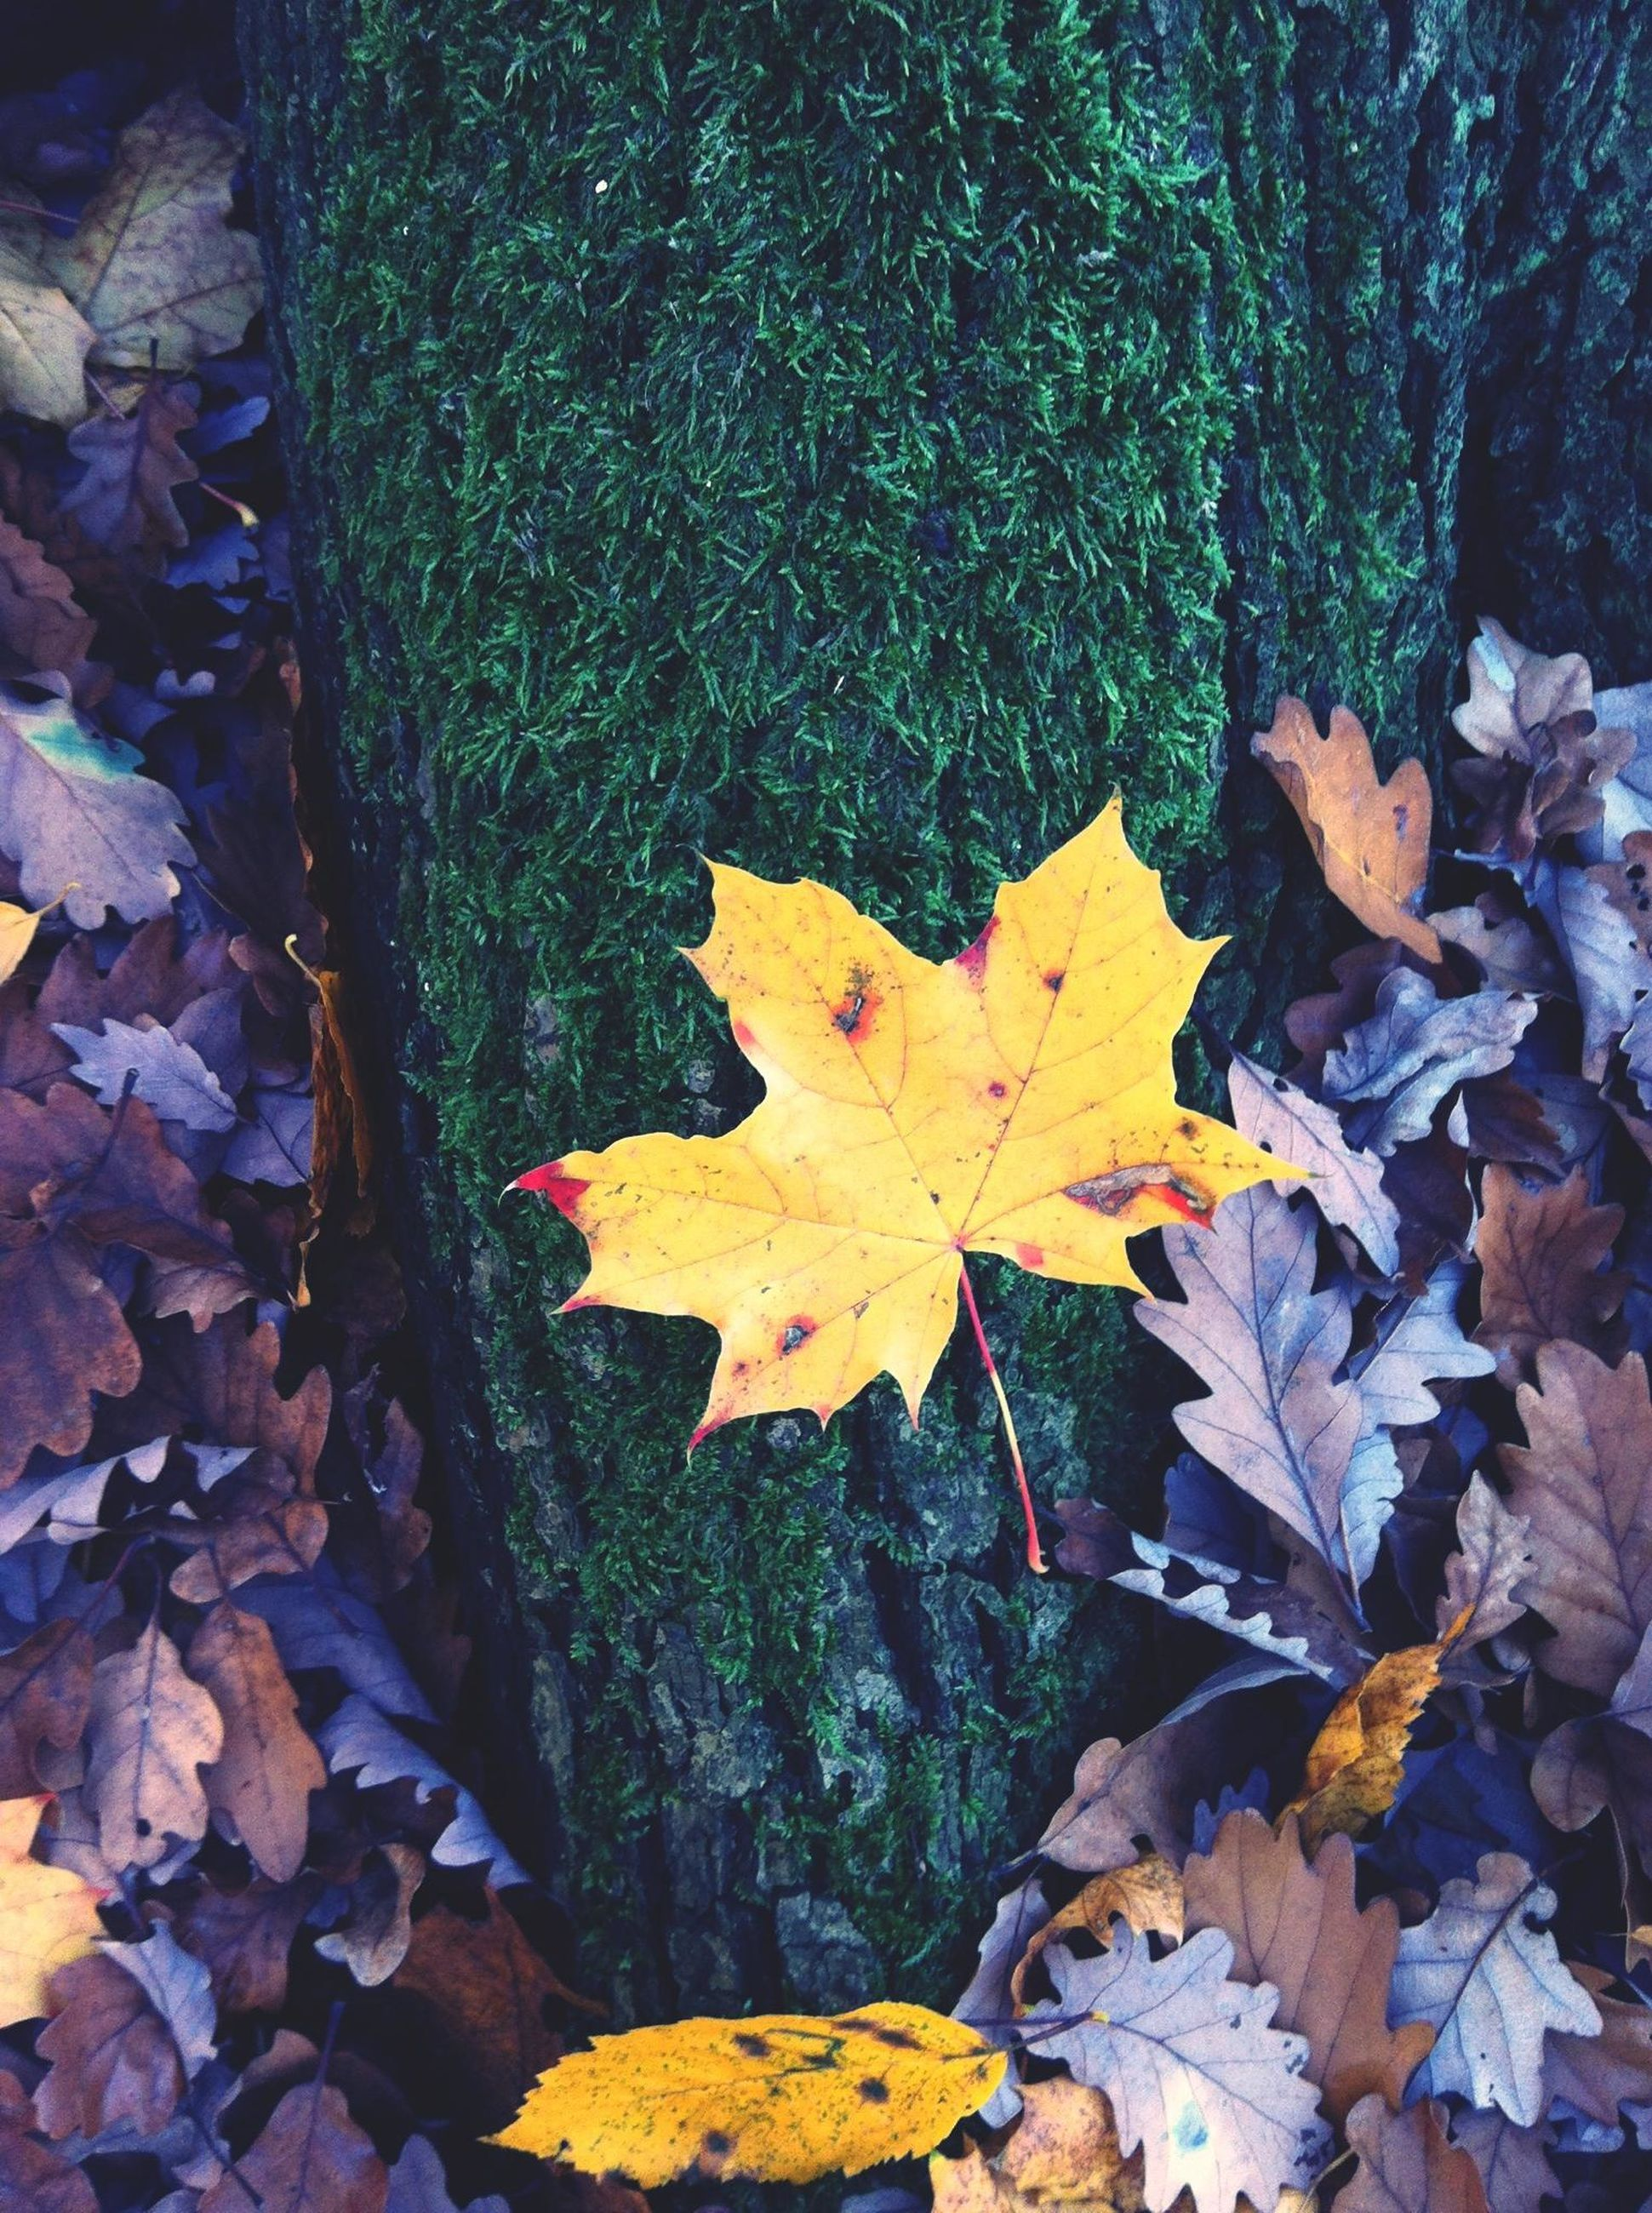 autumn, leaf, change, season, leaves, maple leaf, dry, fallen, leaf vein, natural pattern, nature, natural condition, yellow, falling, close-up, orange color, high angle view, day, tranquility, outdoors